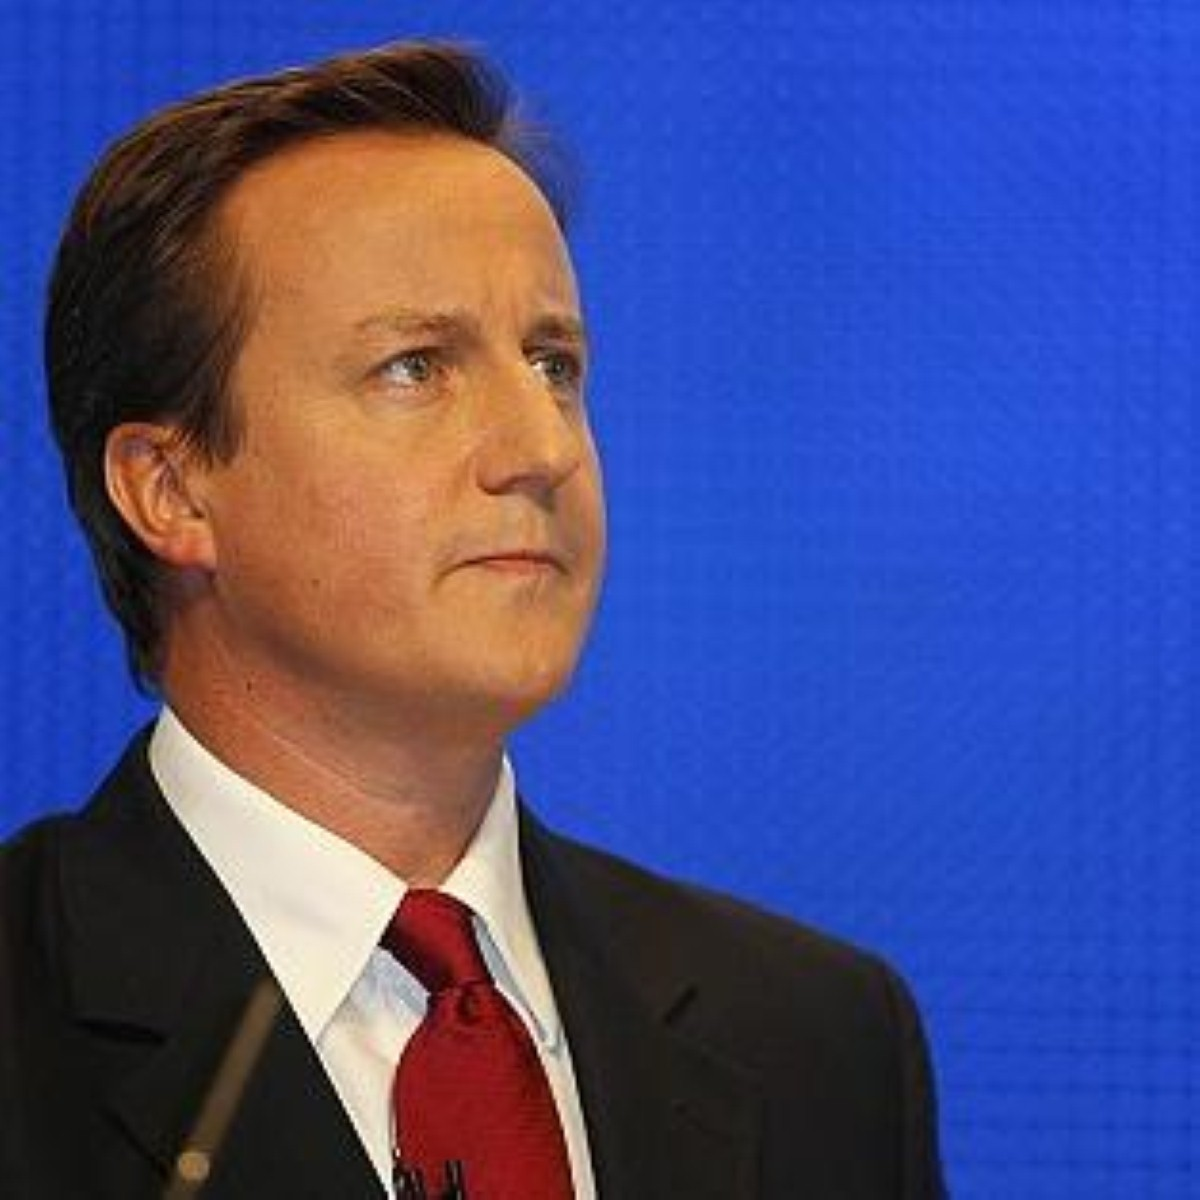 David Cameron: 'Today is the next stage of a long journey for Somalia and its people'